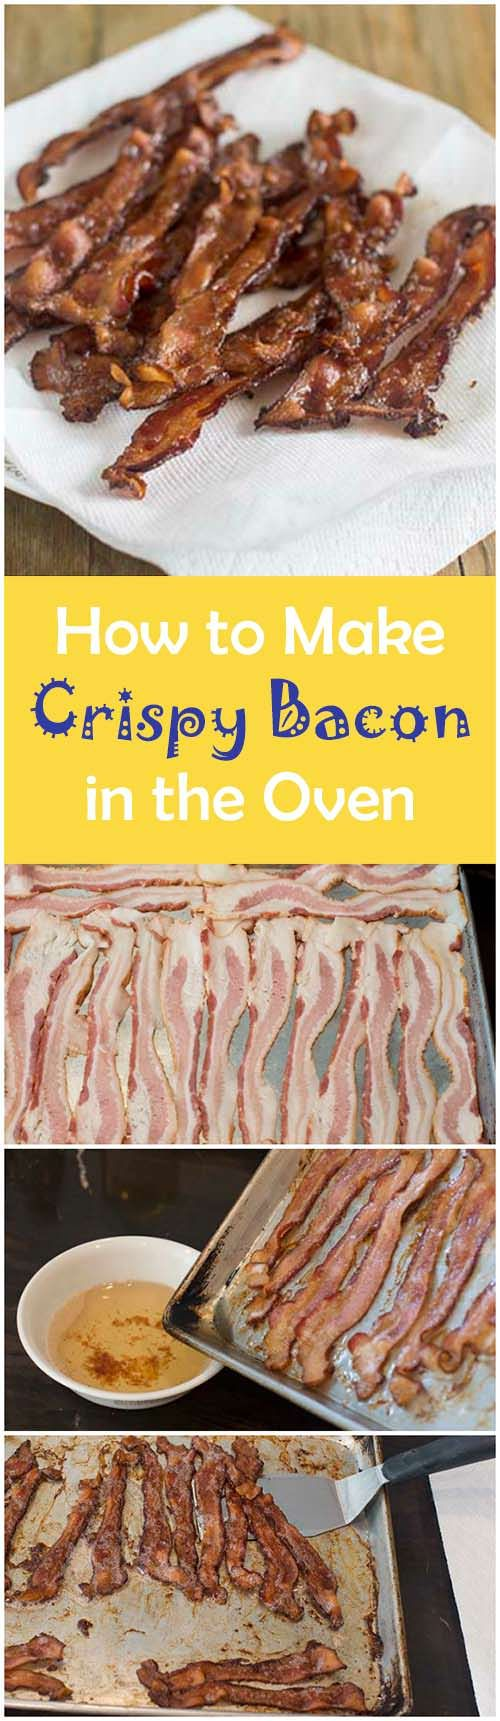 Making bacon for a crowd? Find out how to make a big batch of bacon in the oven. With this method you get it nice and crispy with very little effort. Easy crispy bacon – who doesn't love that?#bacon #cookingtips #cookthestory